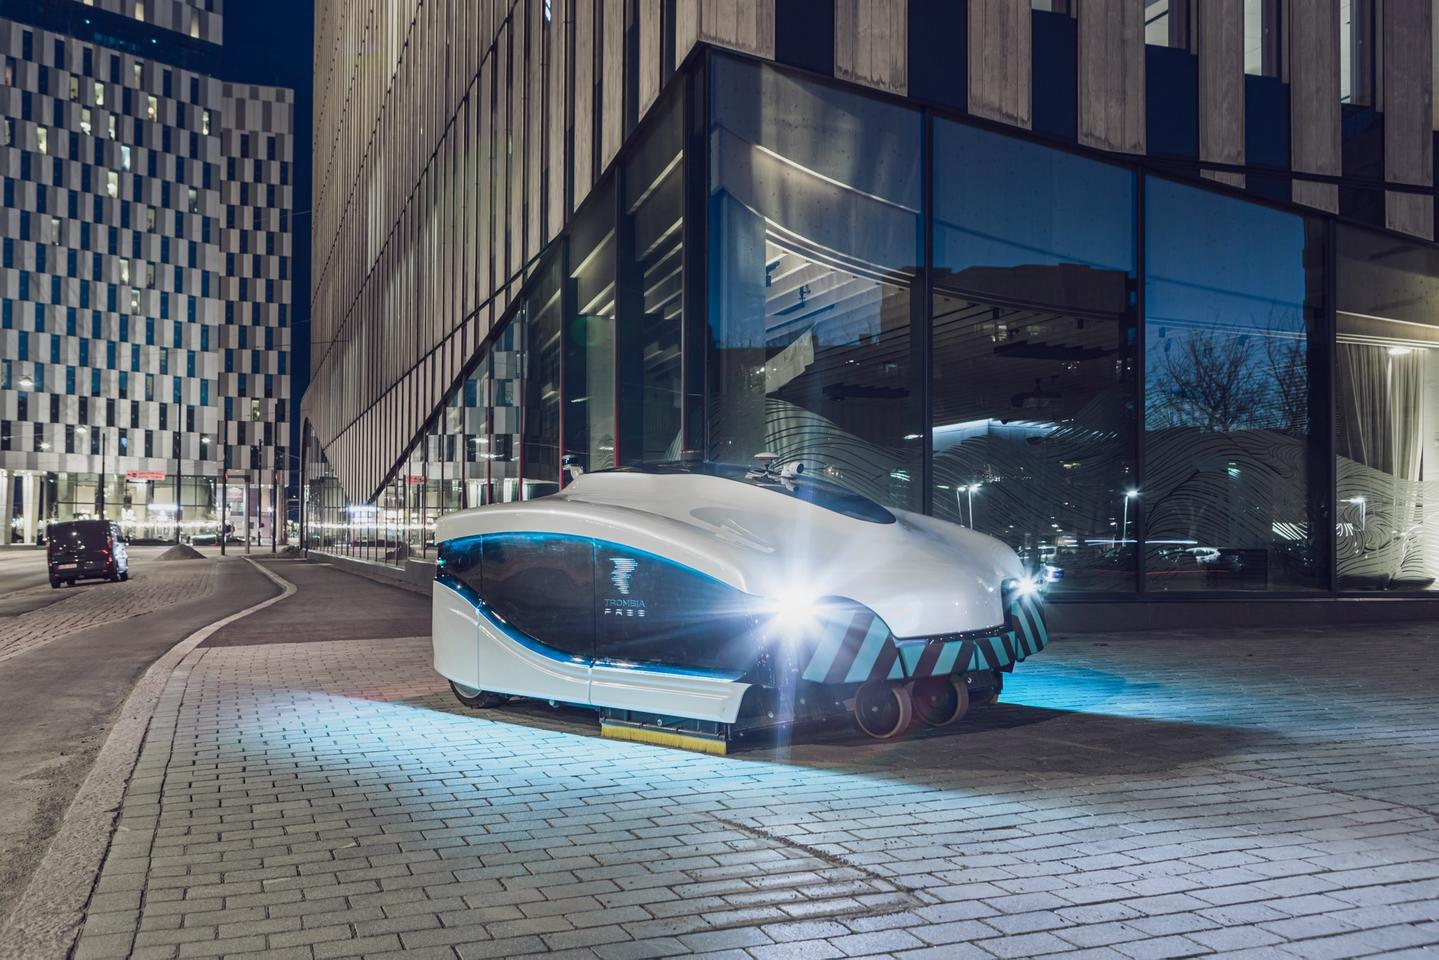 The Trombia Free autonomous electric street sweeper cleaning up on the night shift in Helsinki